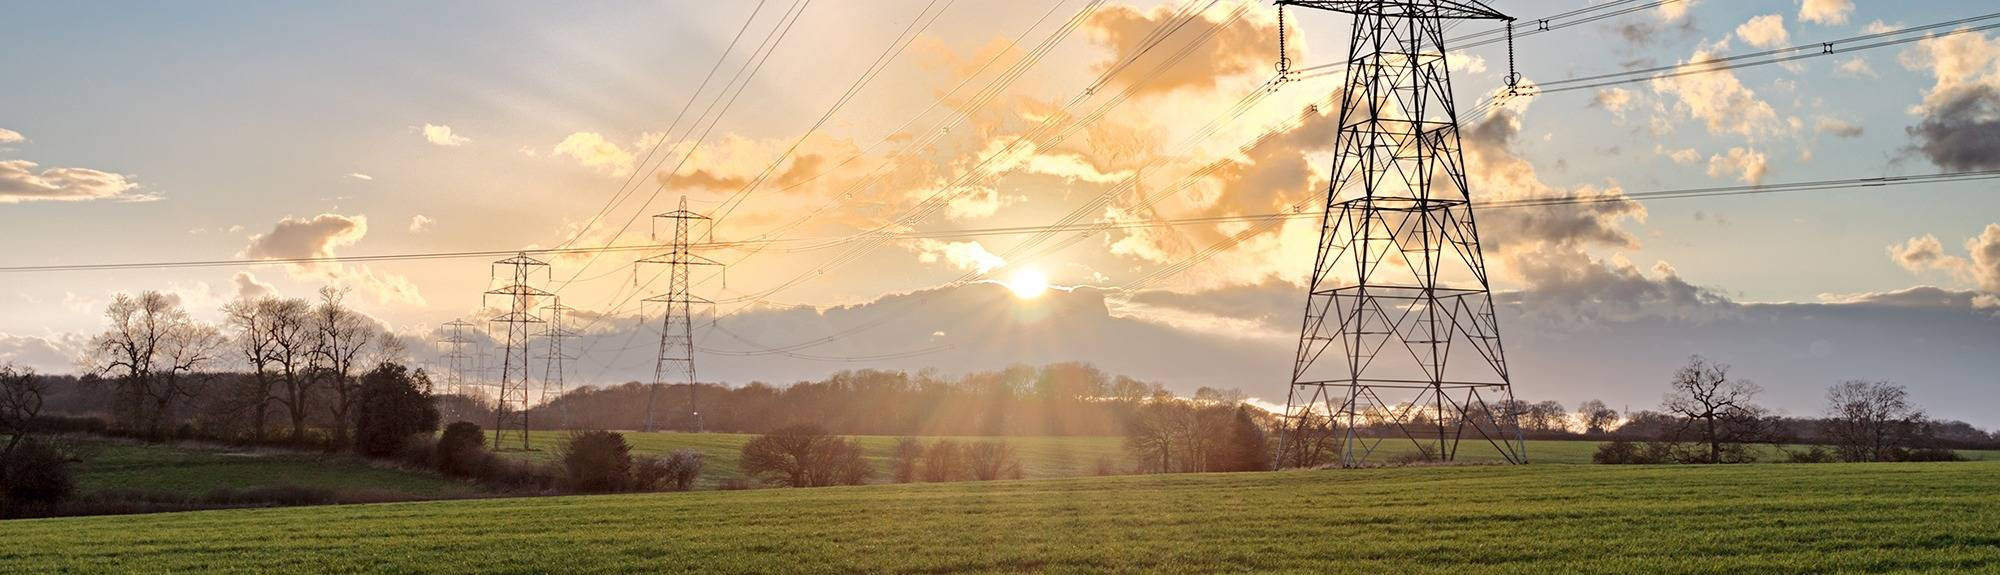 Open fields with electricity pylons